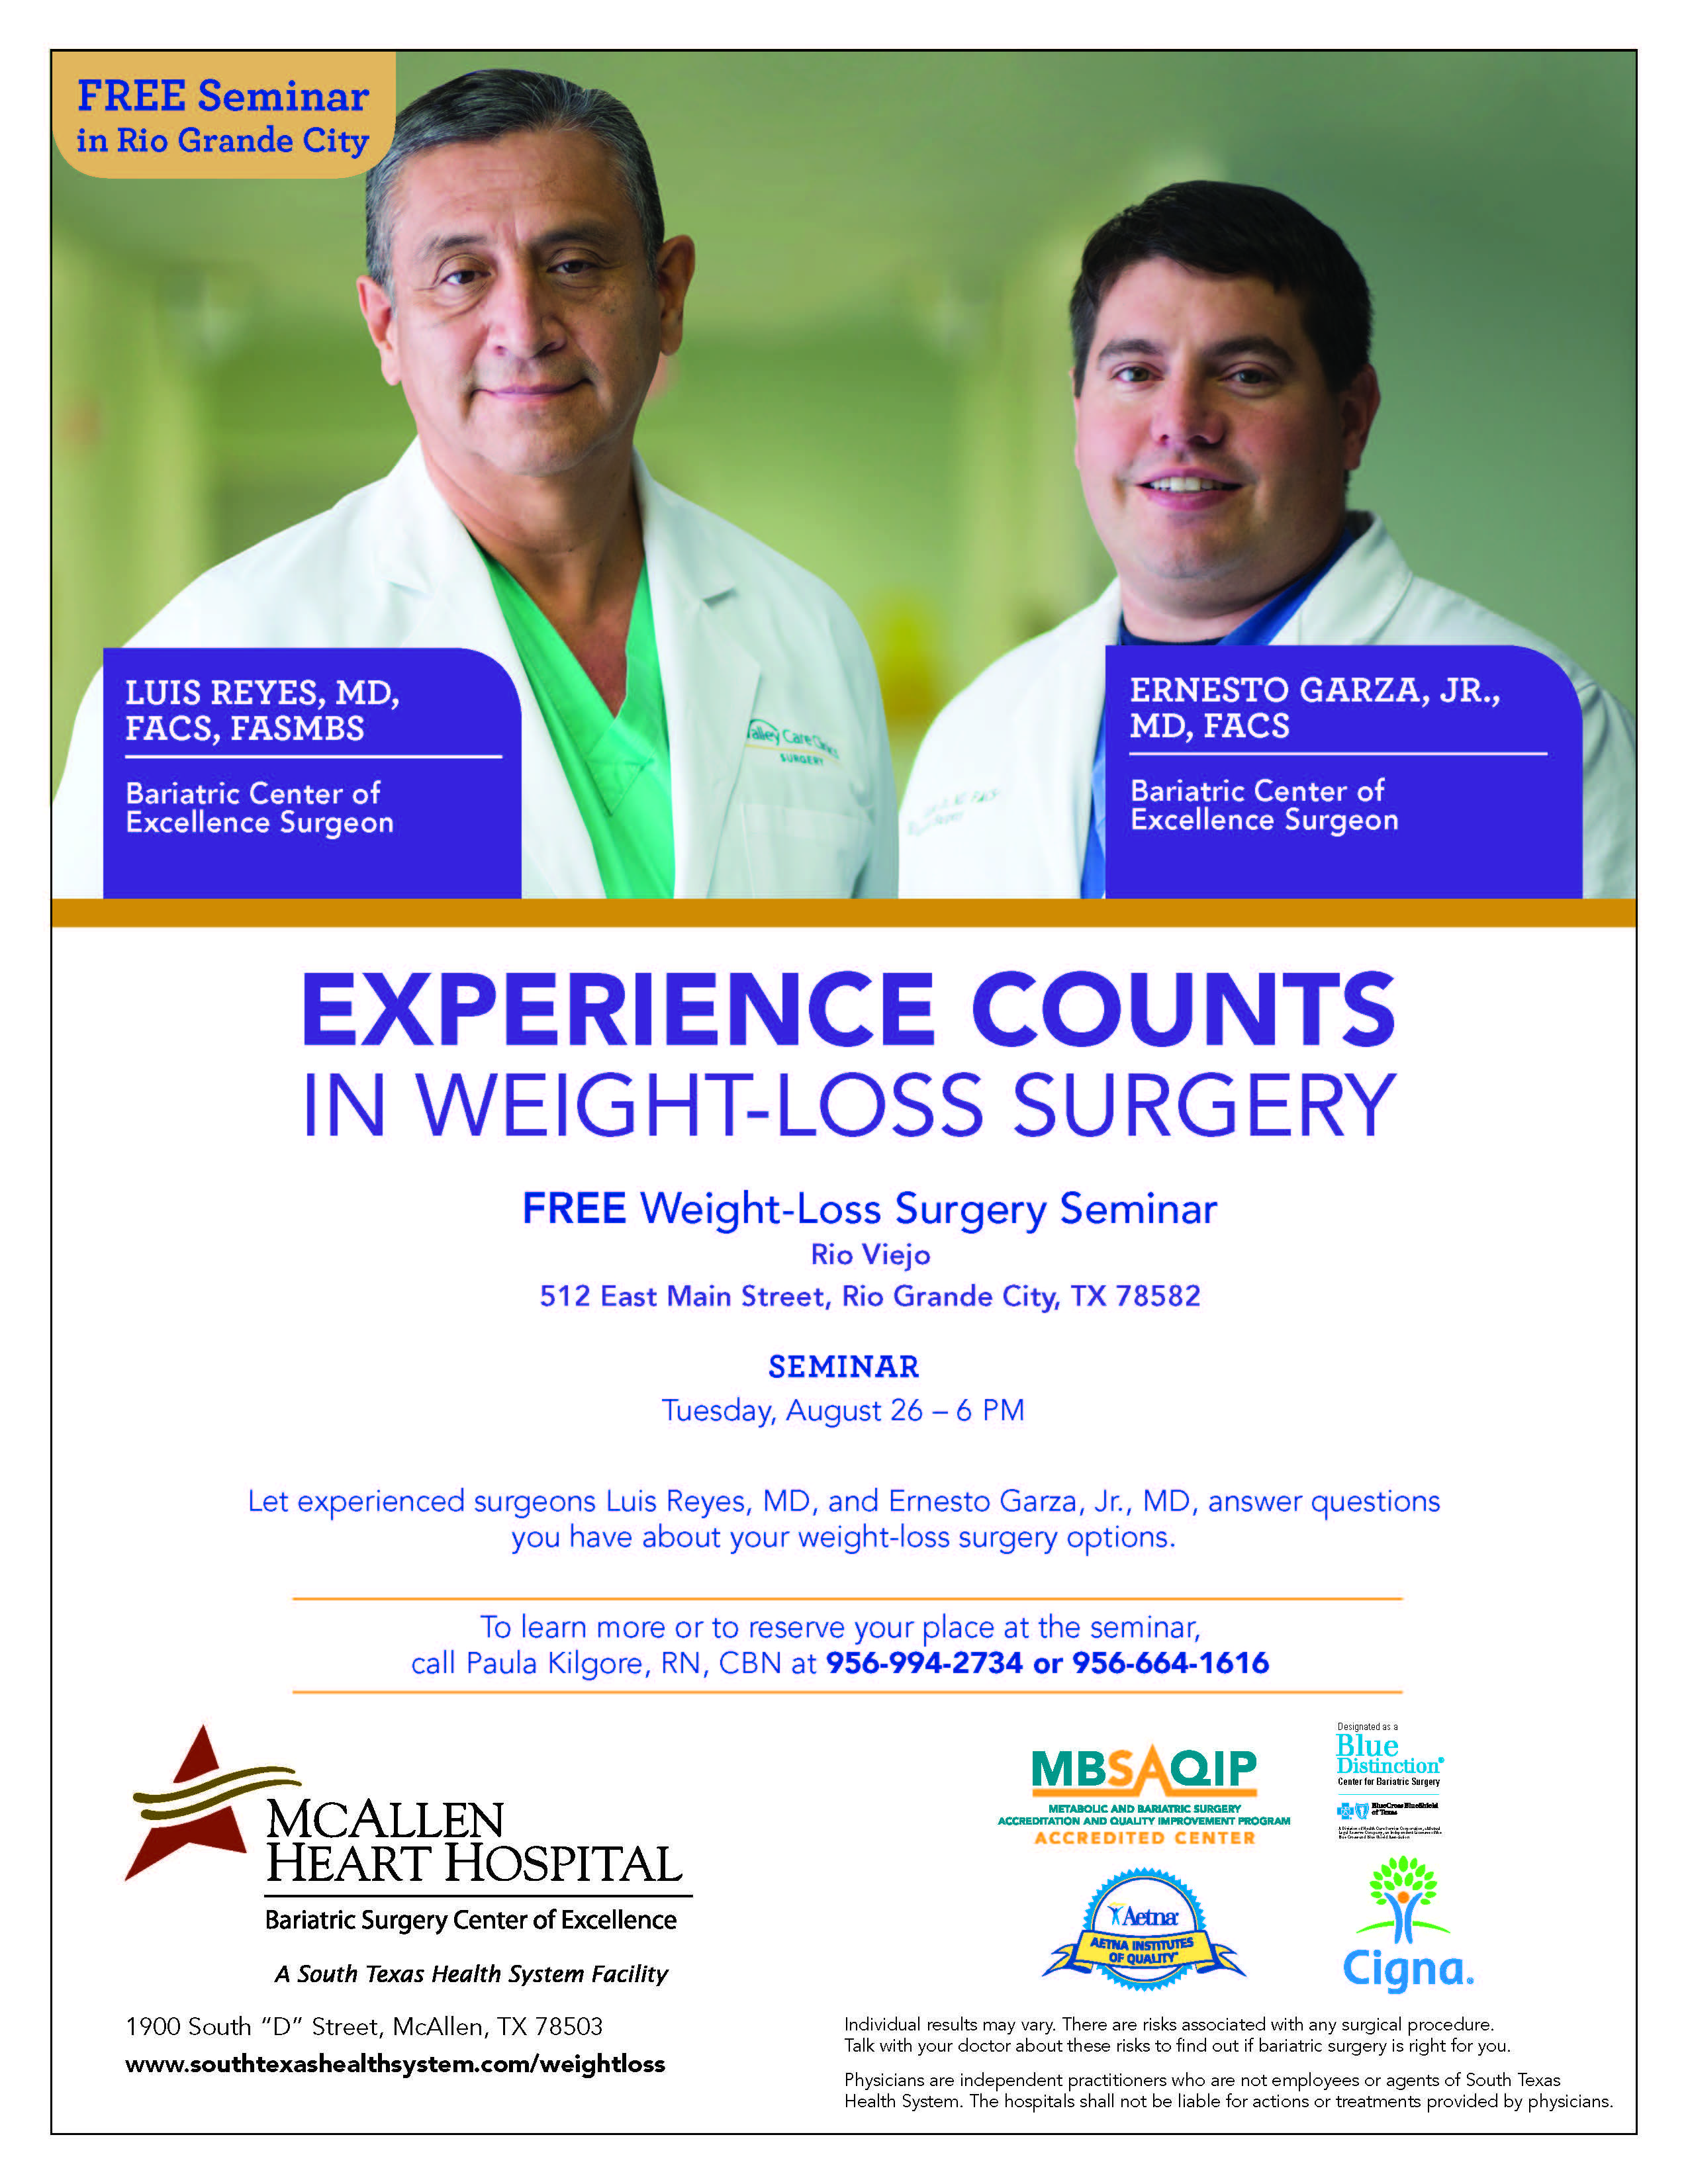 Dr Luis Reyes And Dr Ernesto Garza Surgeons With The Valley Care